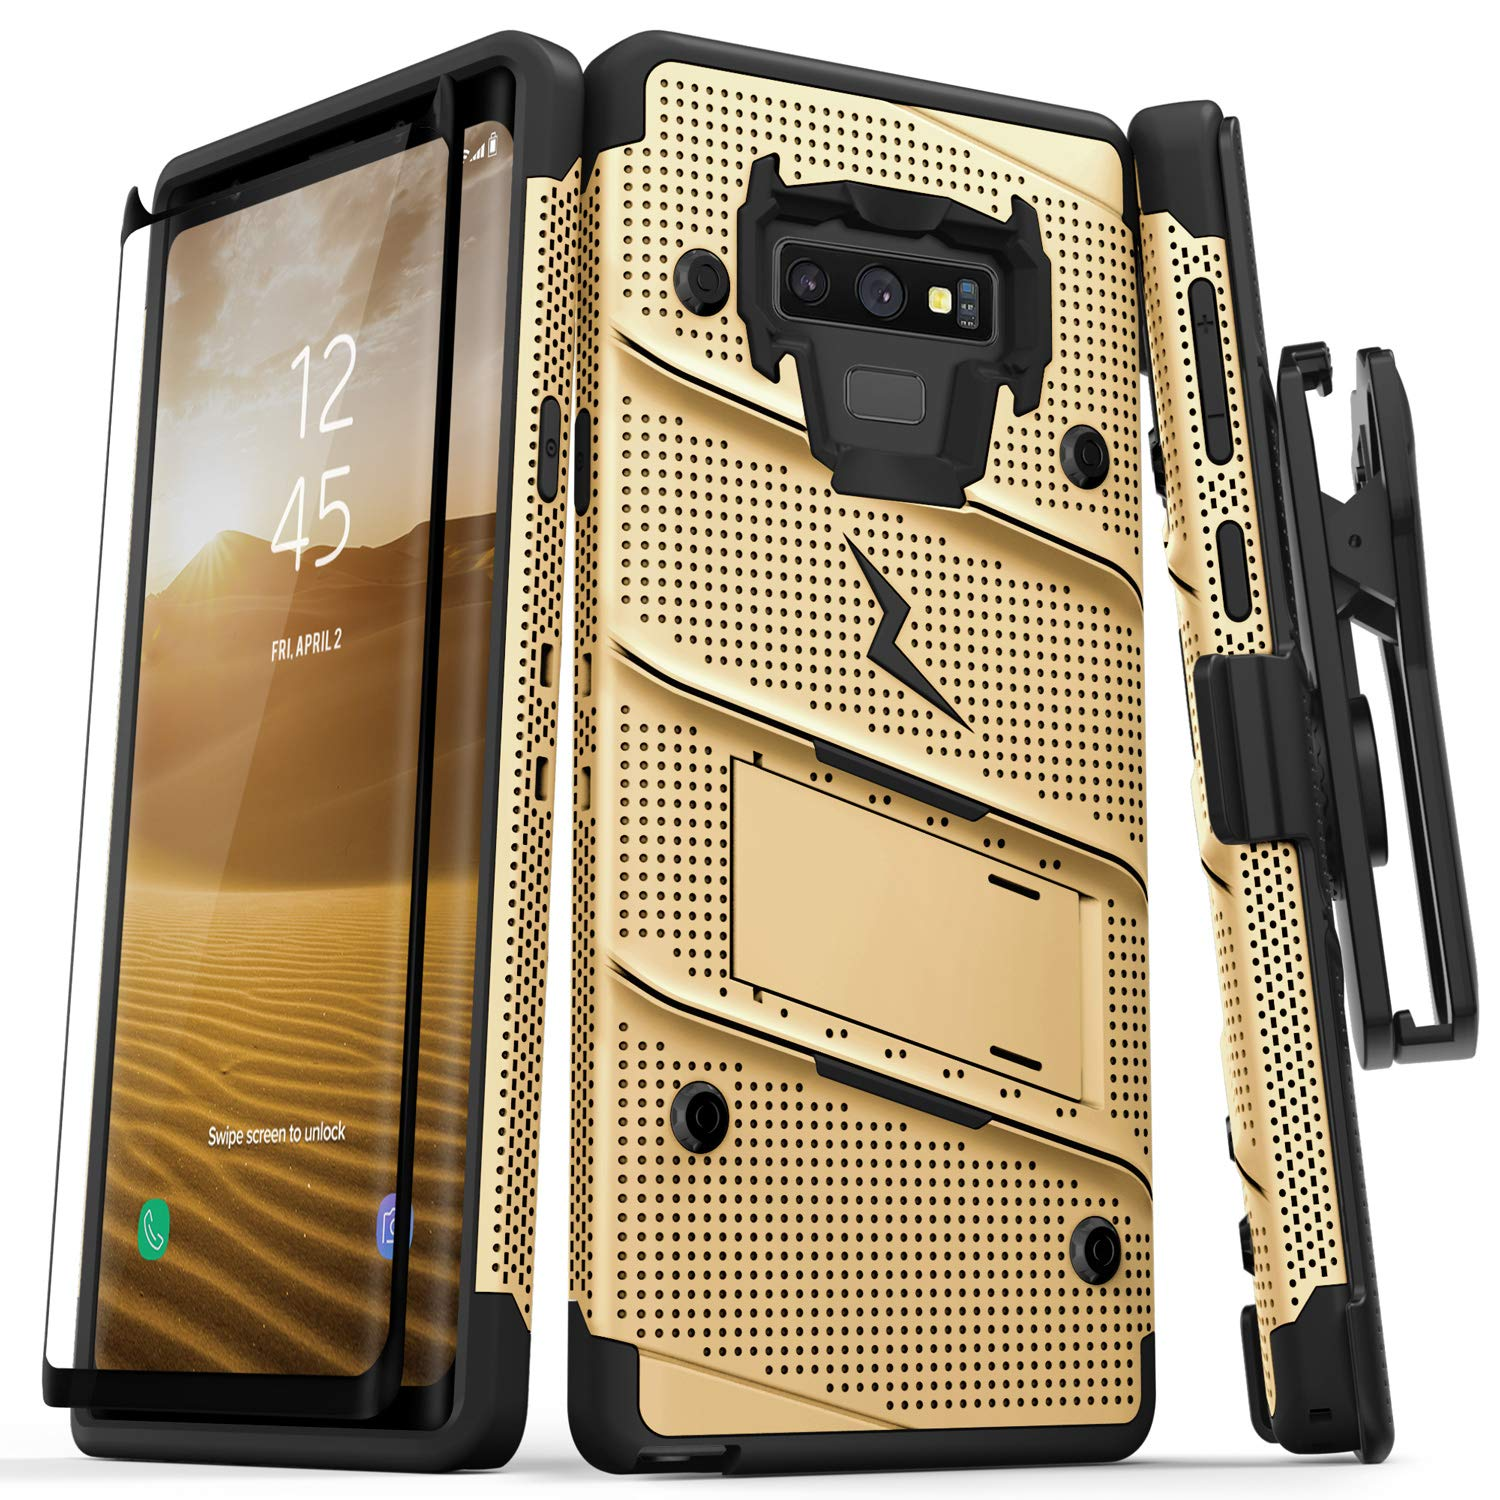 Zizo Bolt Series Galaxy Note 9 Case with Holster, Lanyard, Military Grade Drop Tested and Tempered Glass Screen Protector for Samsung Galaxy Note 9 Cover - Orange/Black